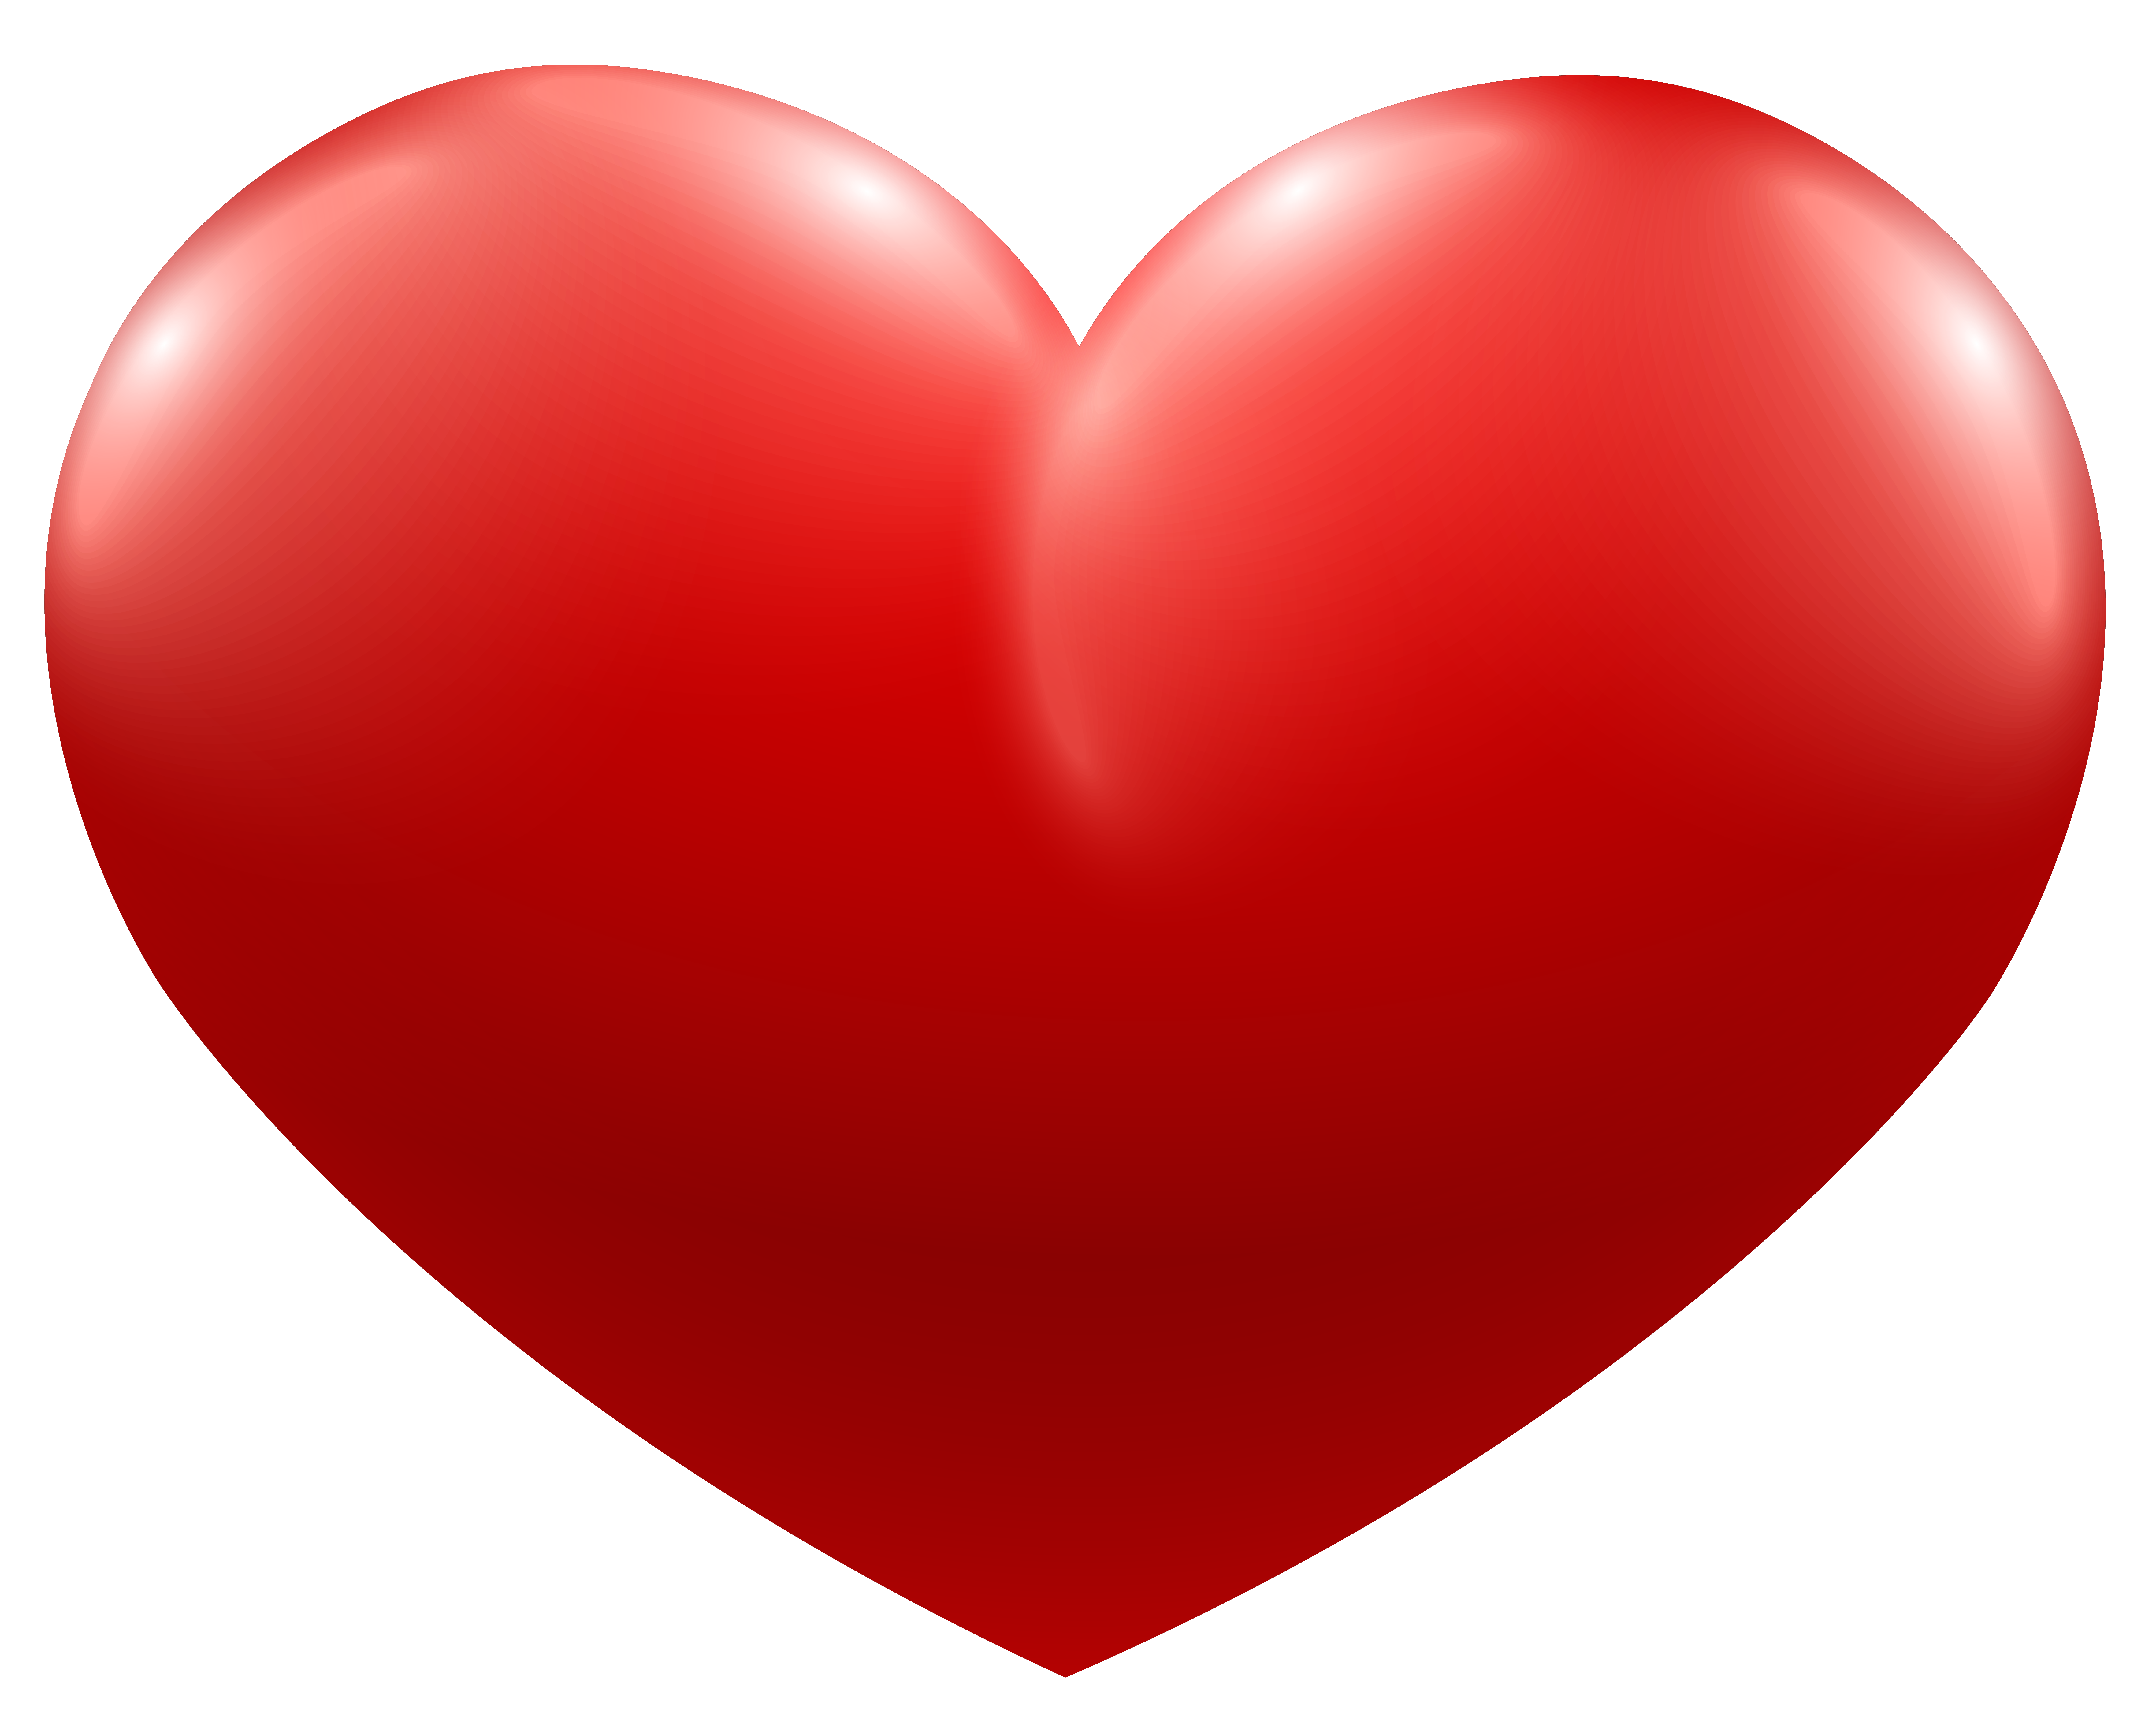 Heart image gallery yopriceville. Red hearts png picture black and white stock